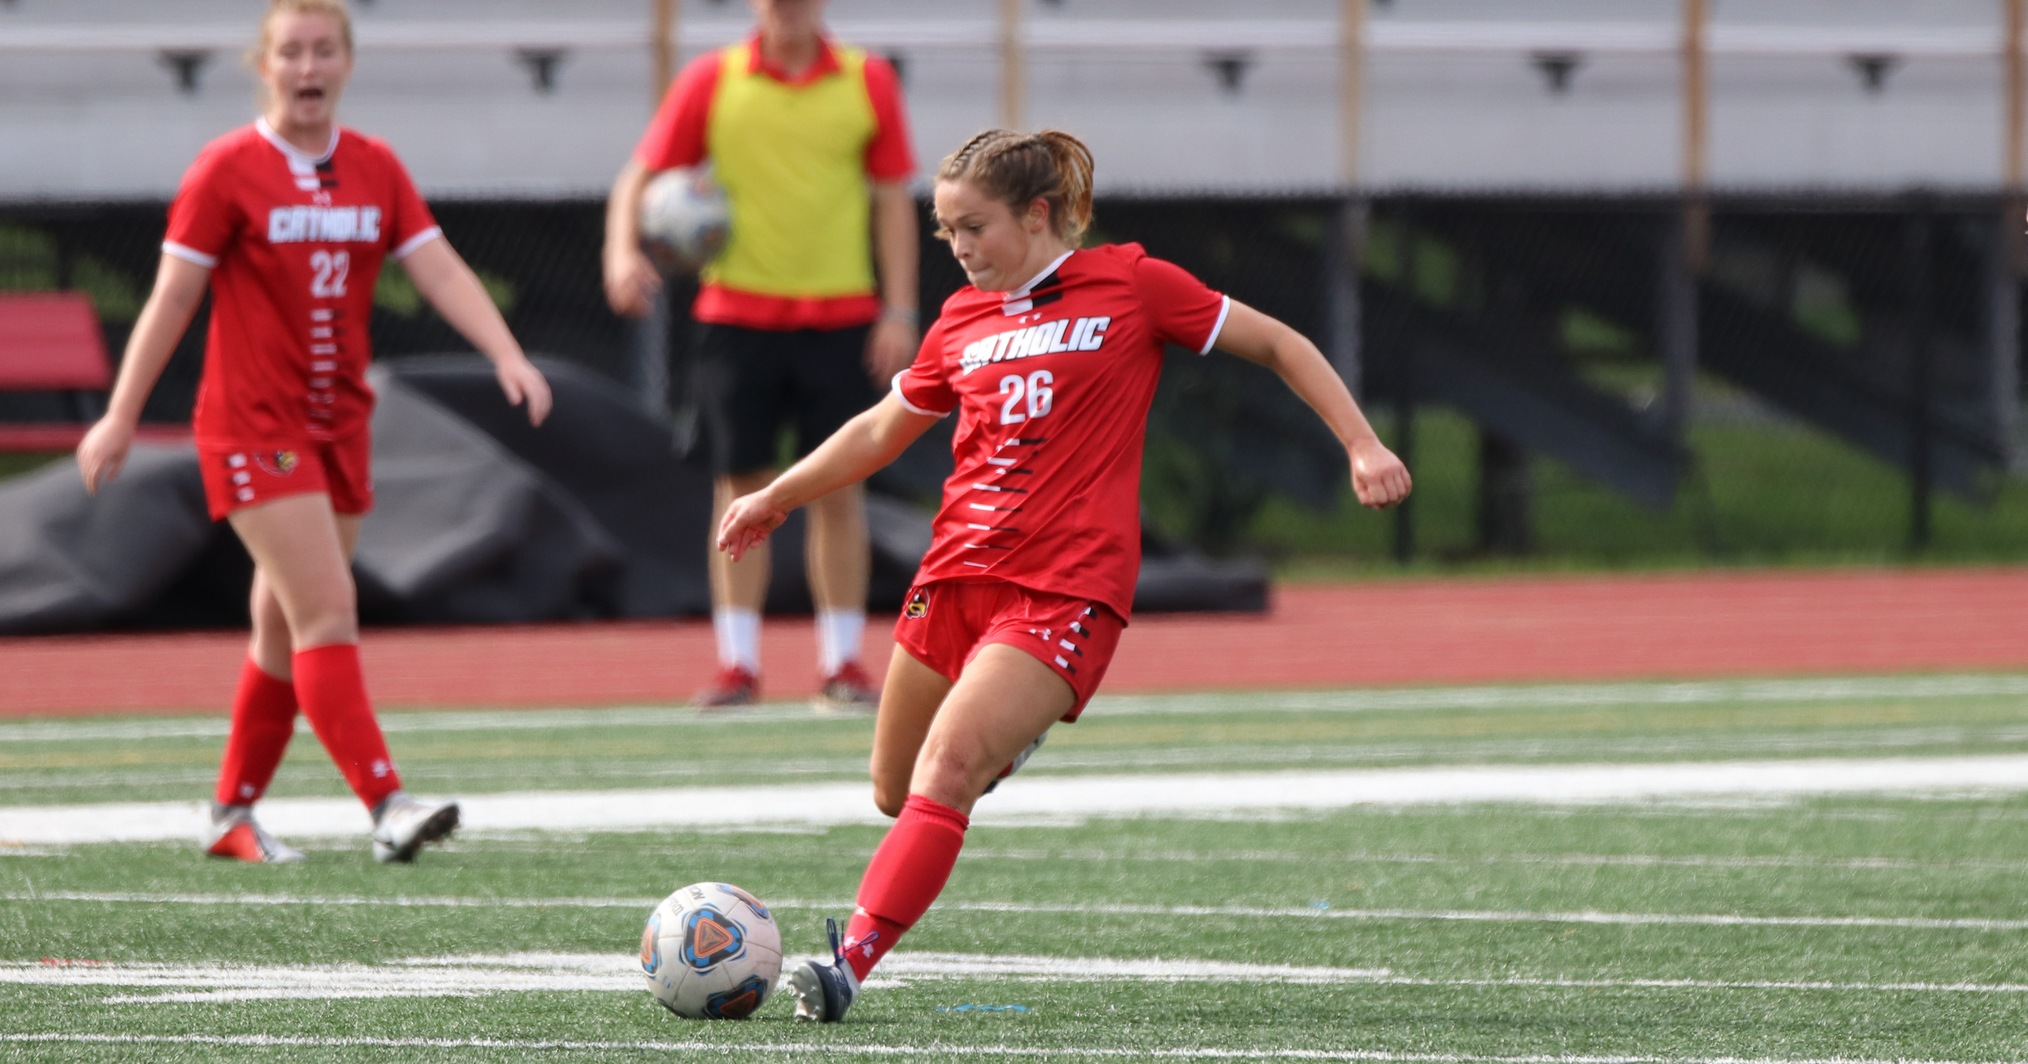 Cardinals Downed by River Hawks in Landmark Semifinal